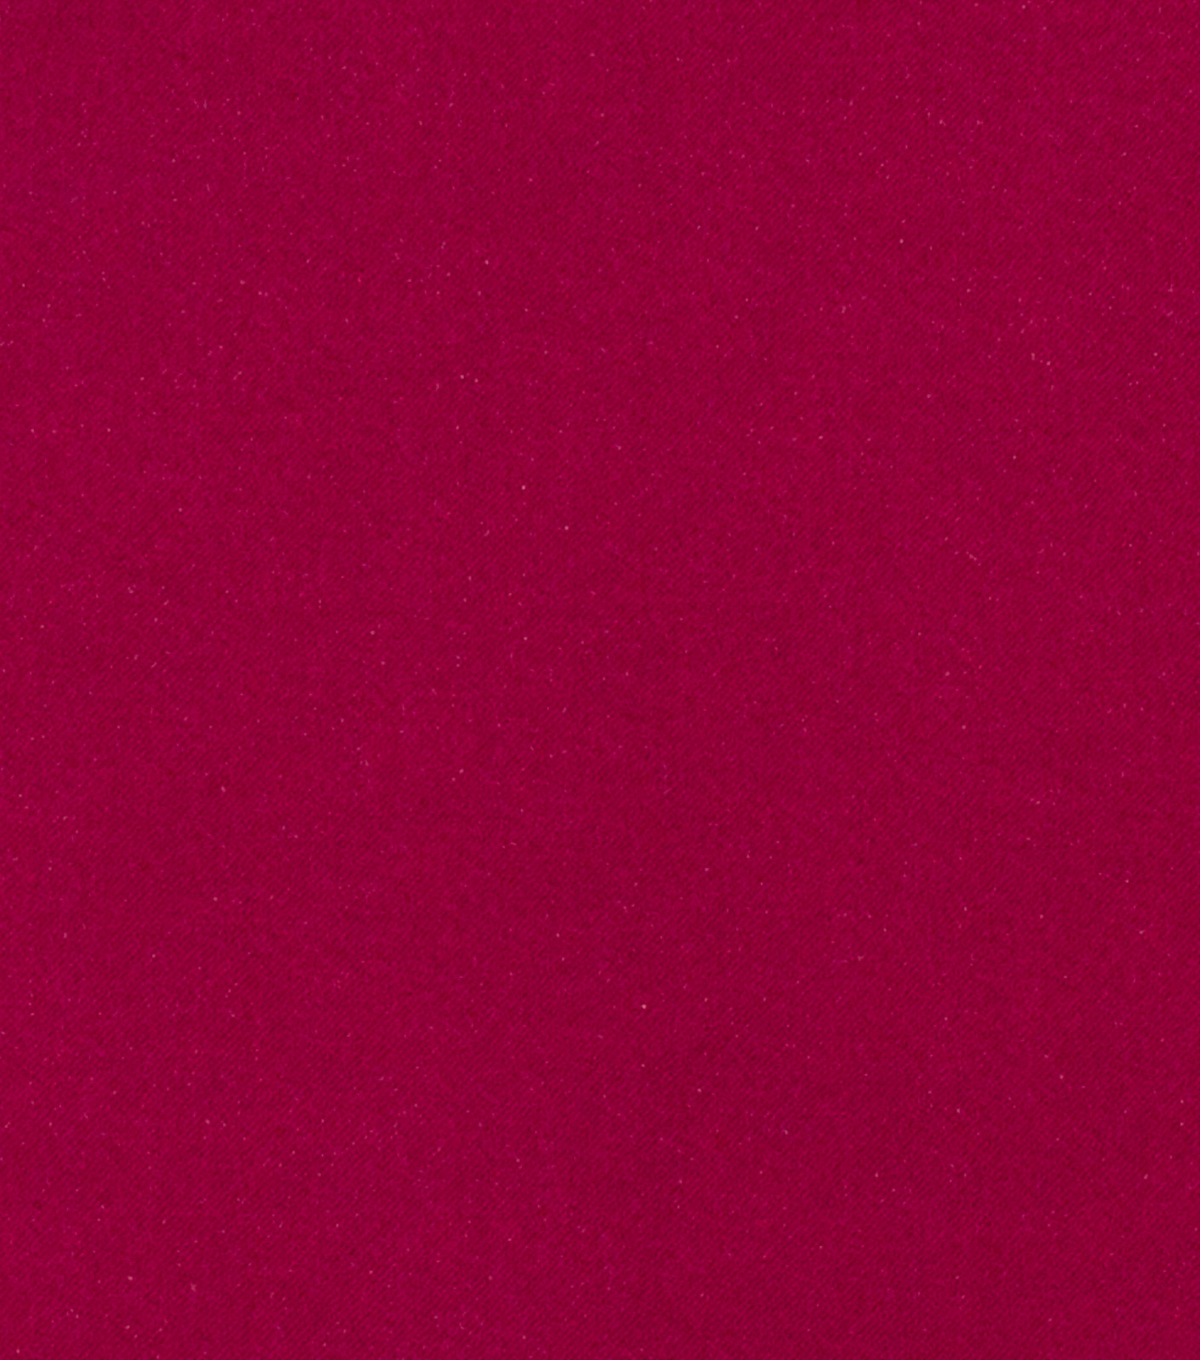 Home Decor 8\u0022x8\u0022 Fabric Swatch-Signature Series Couture Satin Passion